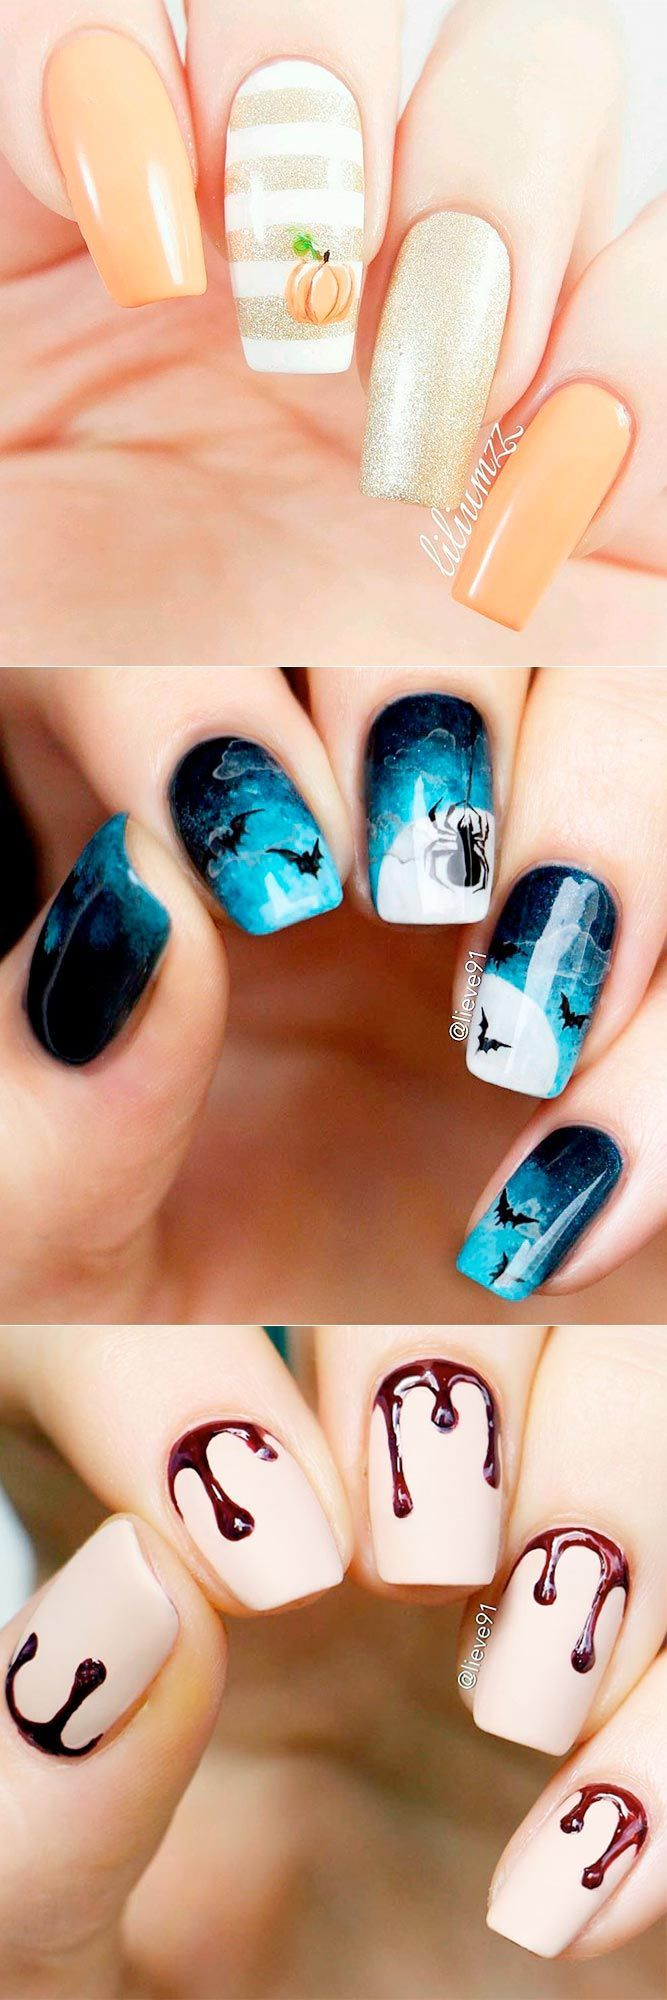 33 Spooky Halloween Nail Designs for More Fun - Nagel, Nagels lakken ...